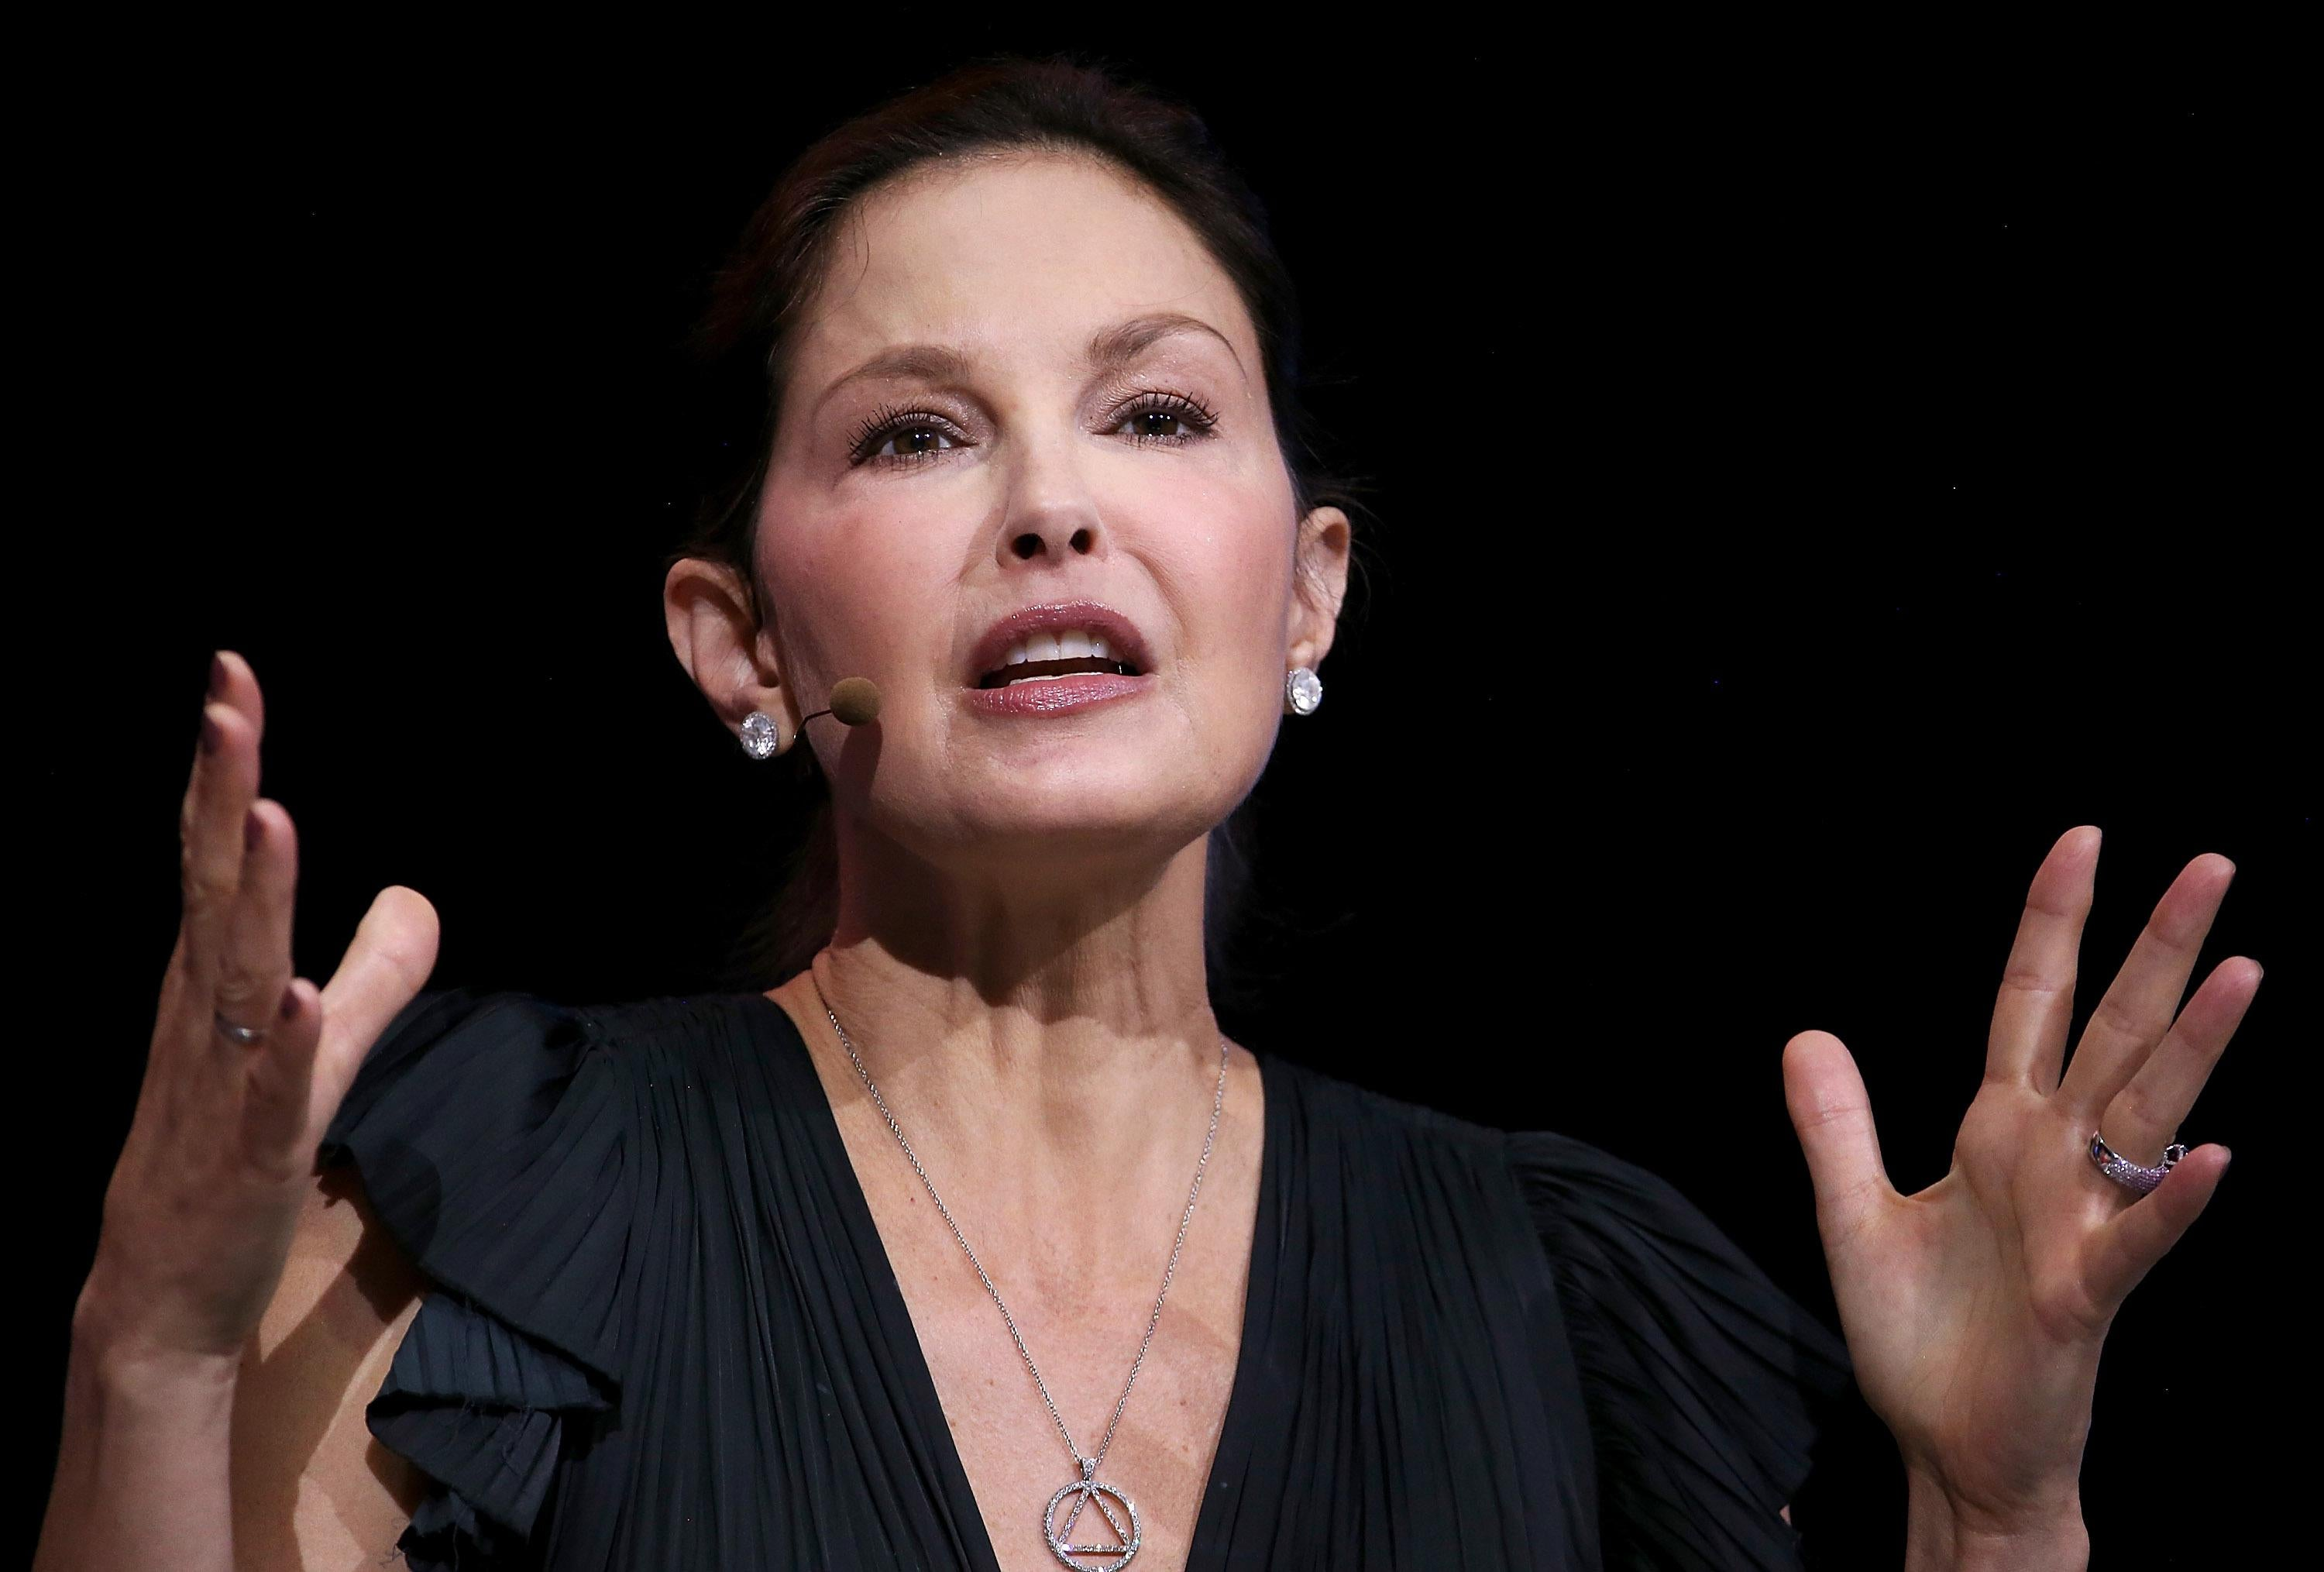 SAN FRANCISCO, CA - APRIL 24:  Actress and activist Ashley Judd speaks during the 29th annual Conference of the Professional Businesswomen of California (PBWC) on April 24, 2018 in San Francisco, California. The PBWC is a day of keynote speakers and seminars by top female leaders and panels of industry experts.  (Photo by Justin Sullivan/Getty Images)